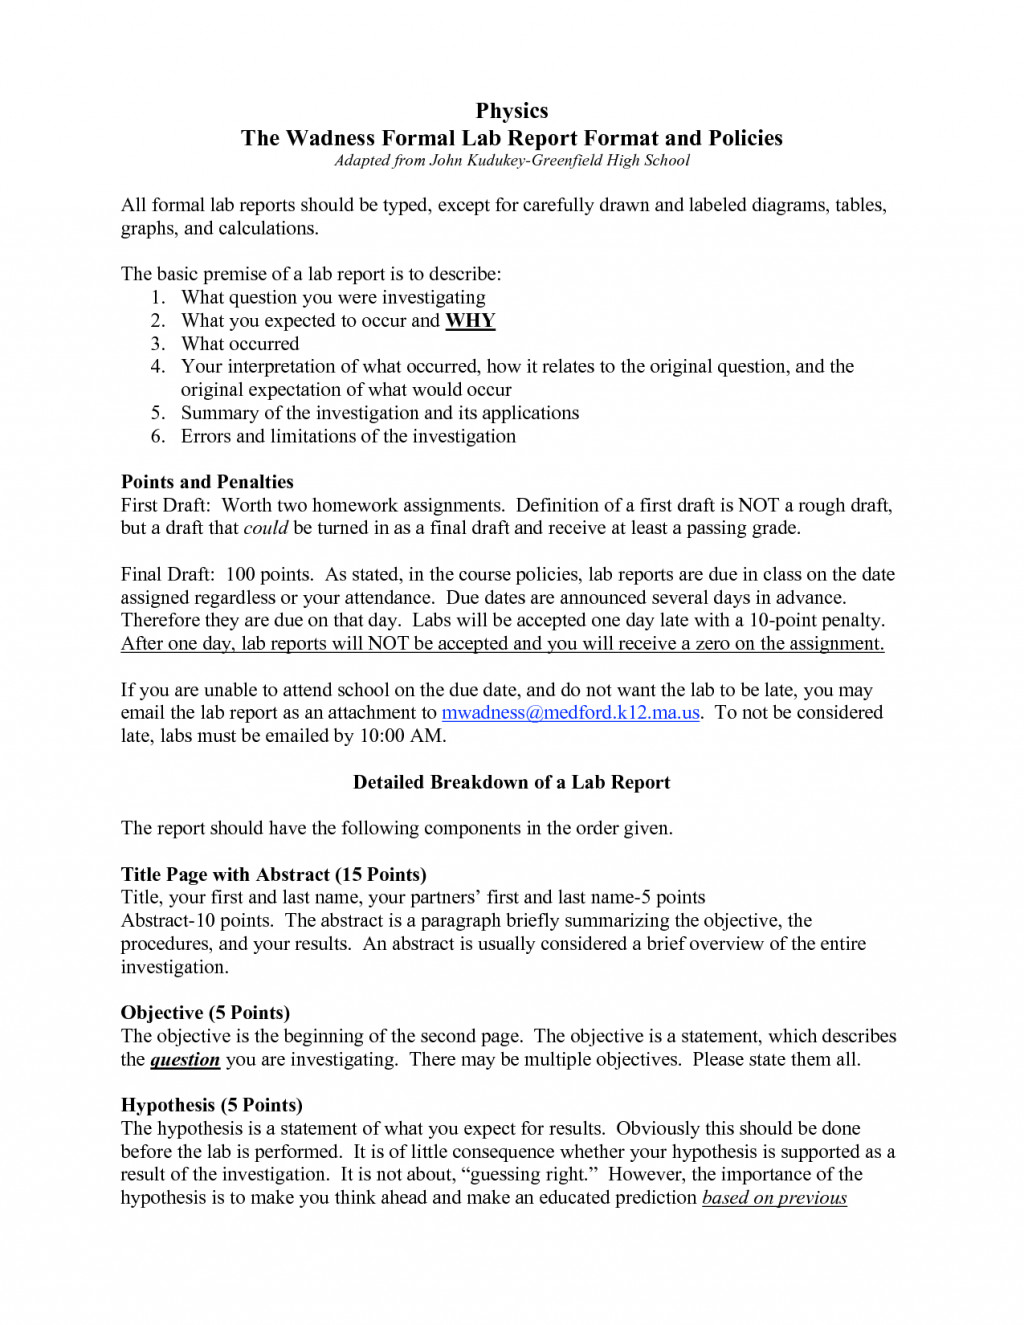 Formal Lab Report Template formal Lab Report Template Physics Biological Science